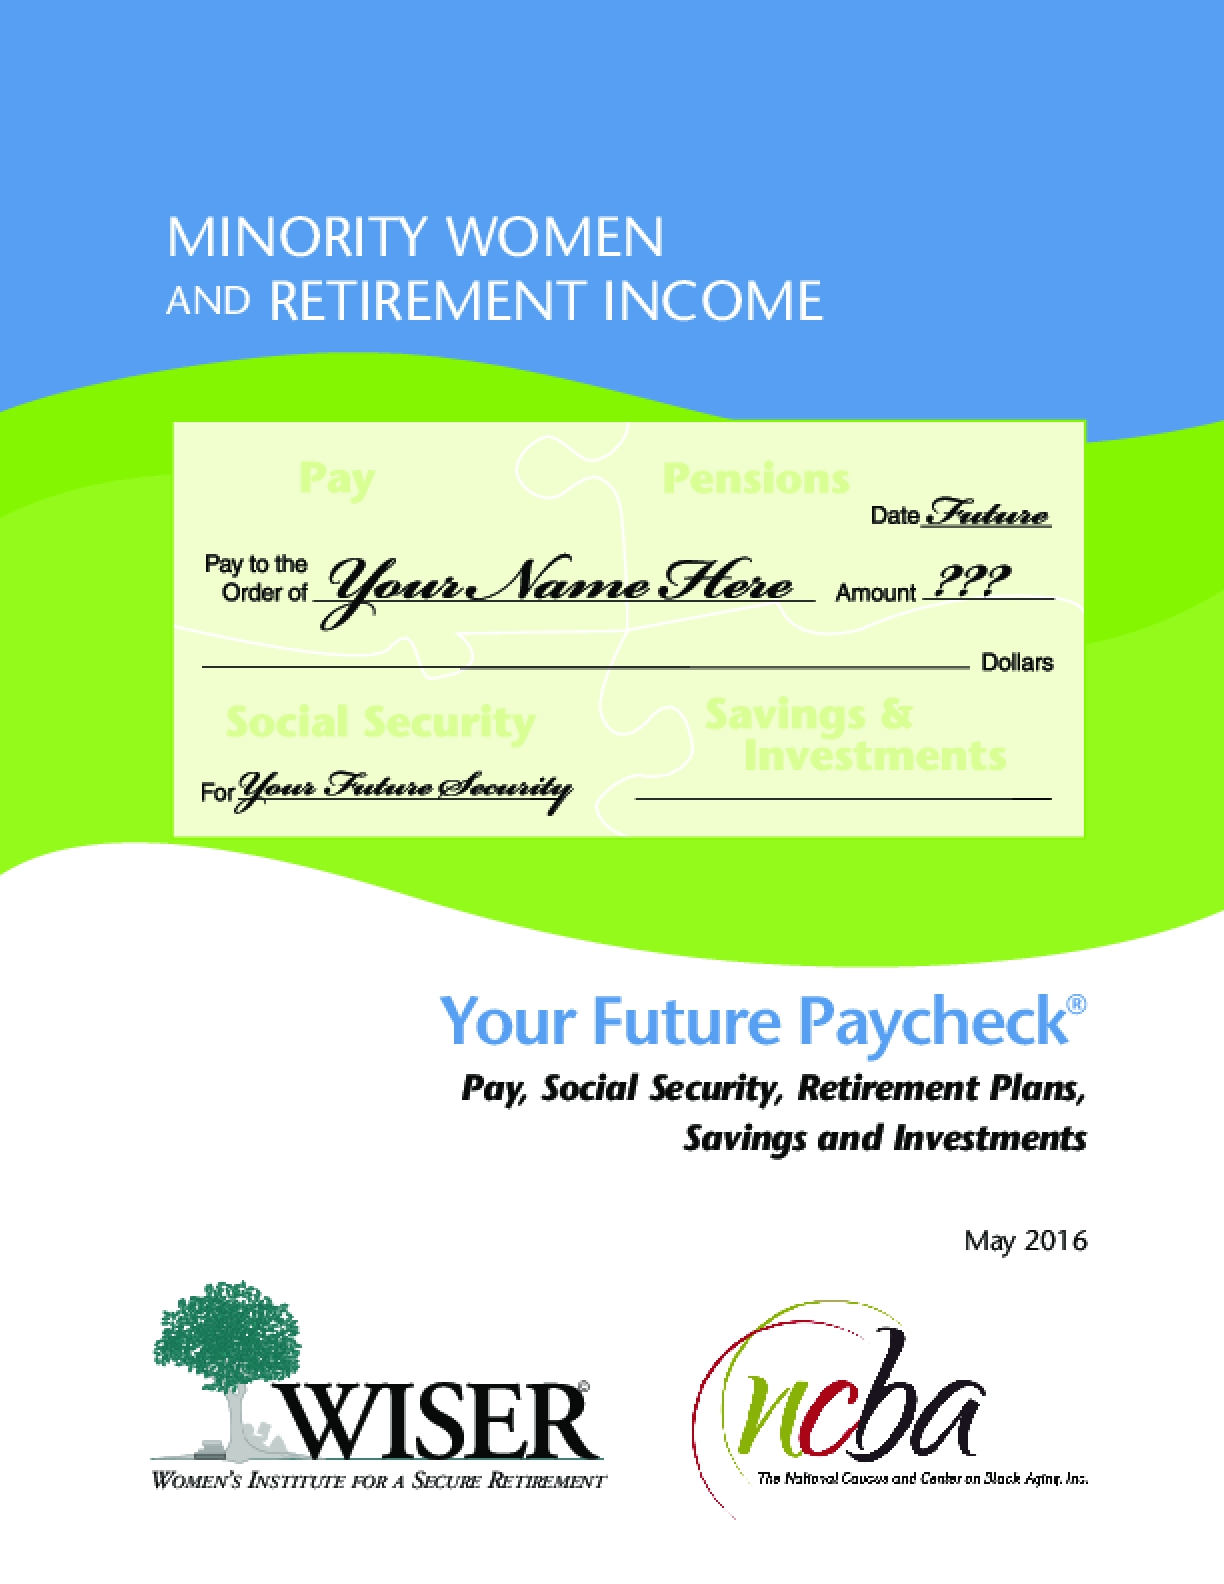 Your Future Paycheck® Pay, Social Security, Retirement Plans, Savings and Investments